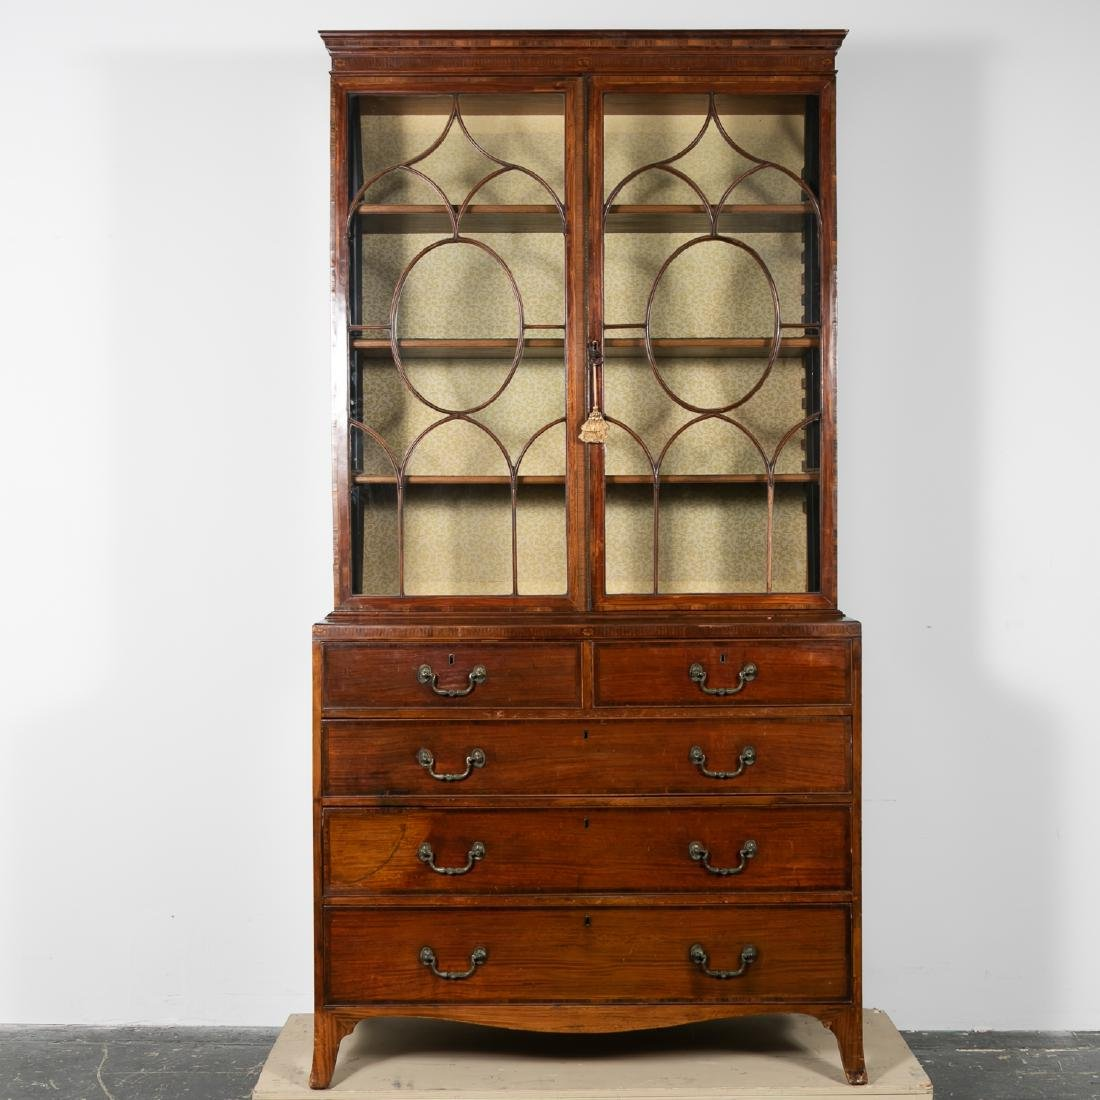 19th C. English Mahogany Bookcase on Chest